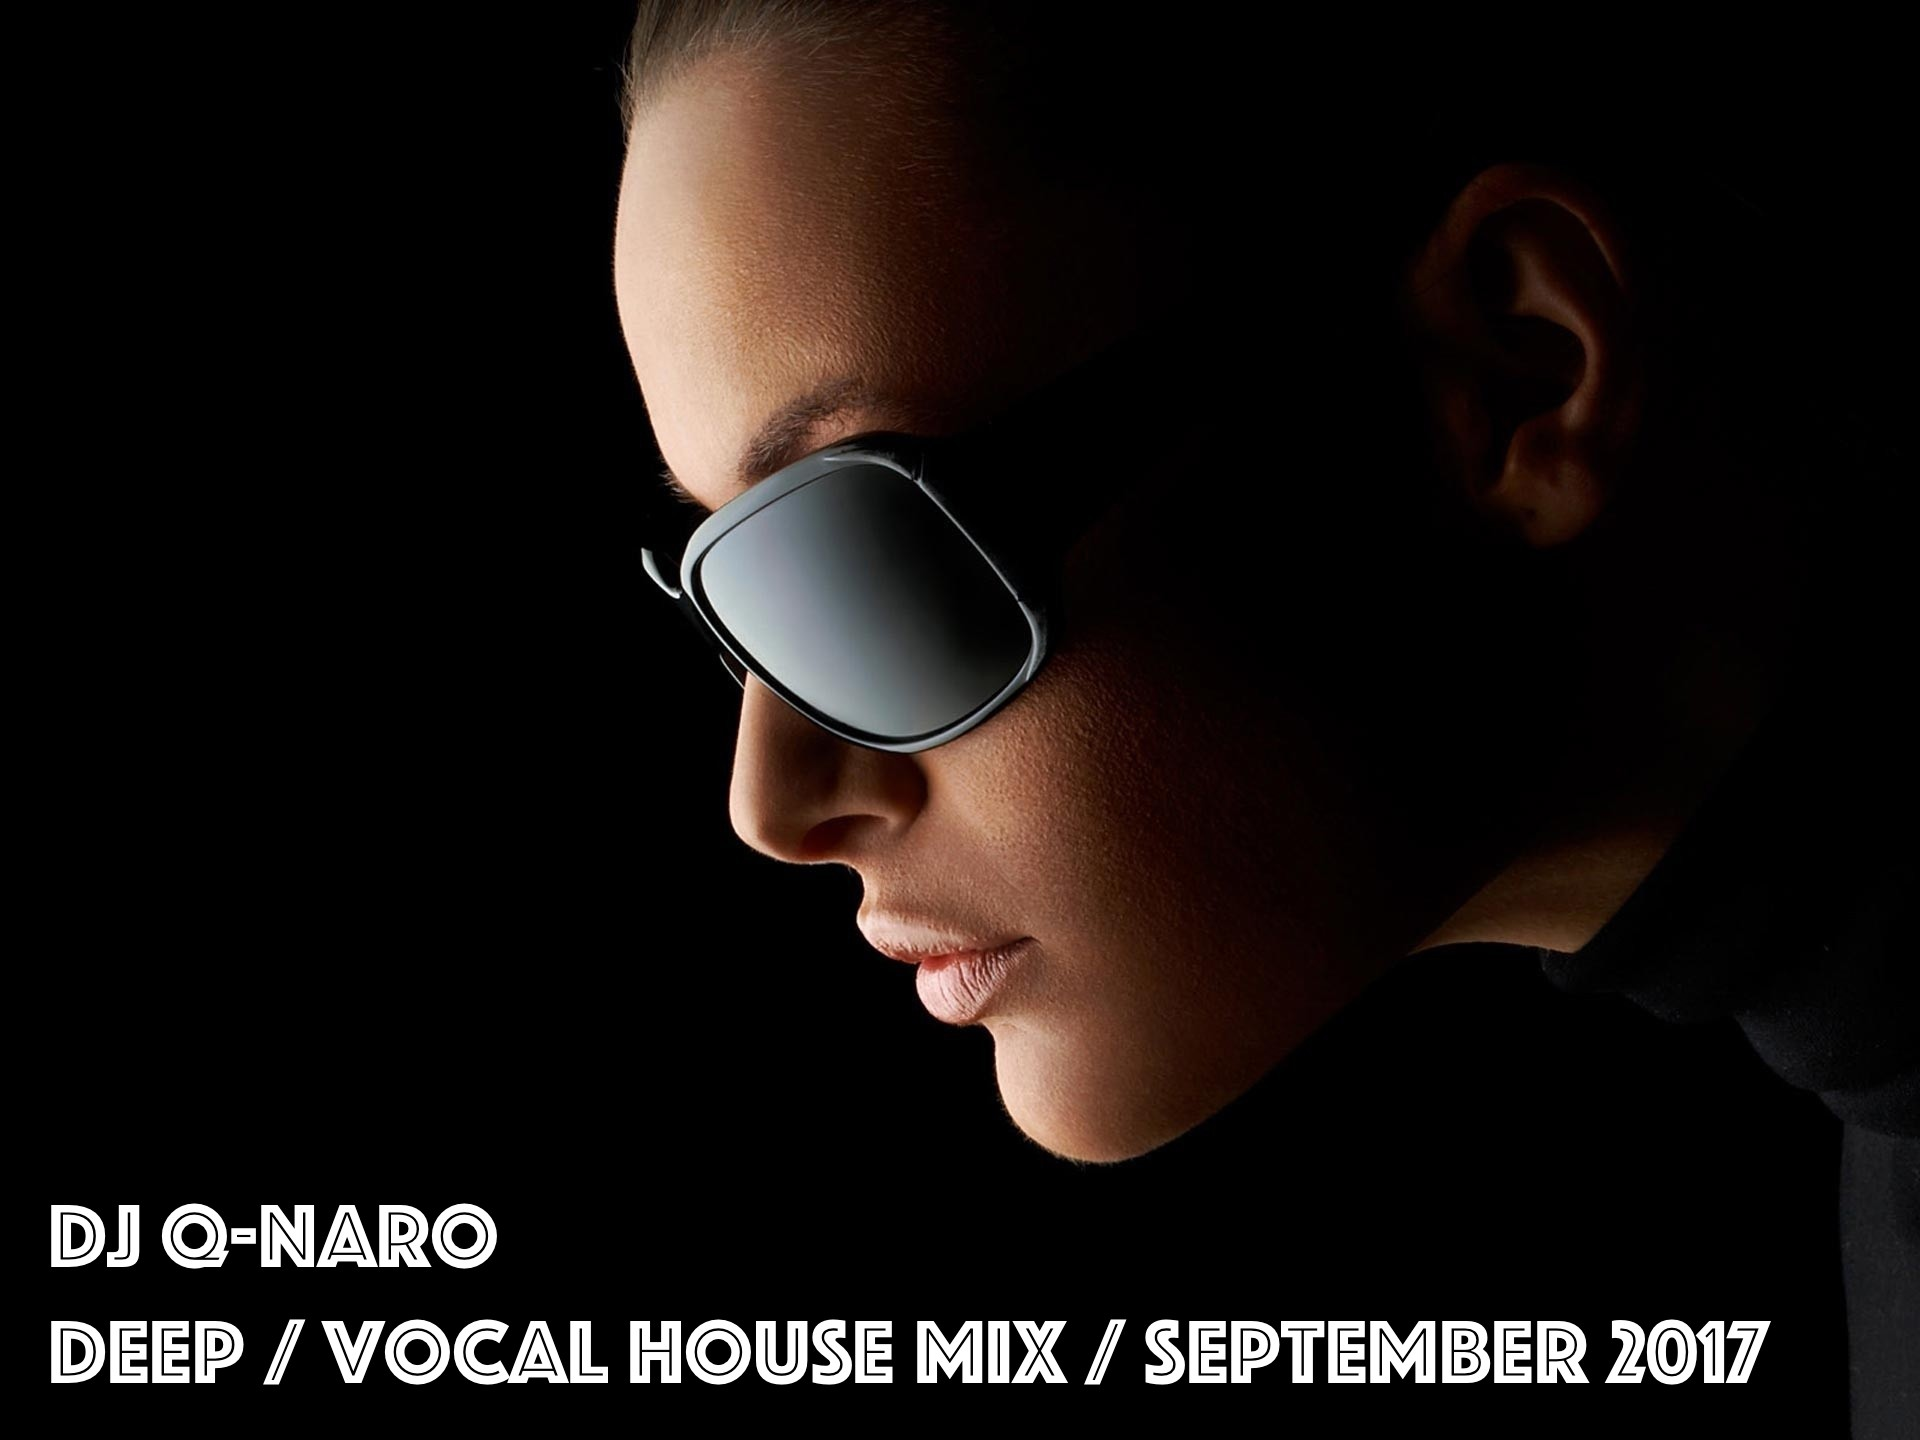 Q-Naro - Deep / Vocal House Mix - September 2017